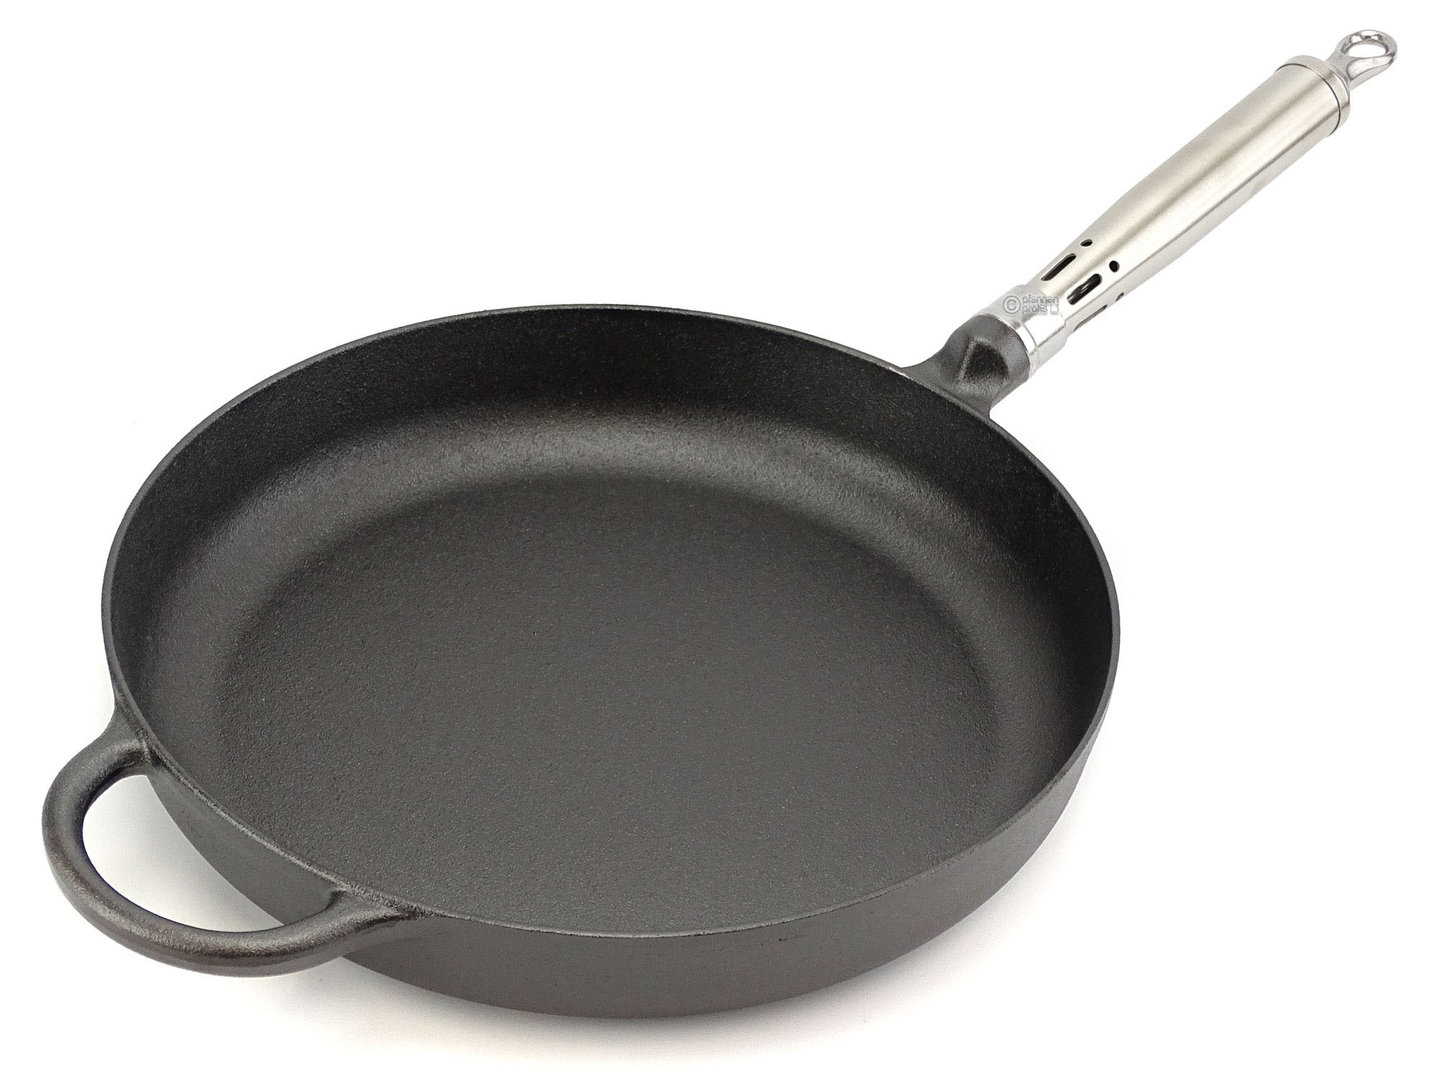 RONNEBY BRUK cast iron frypan MAESTRO 28 cm stainless steel handle, pre-seasoned